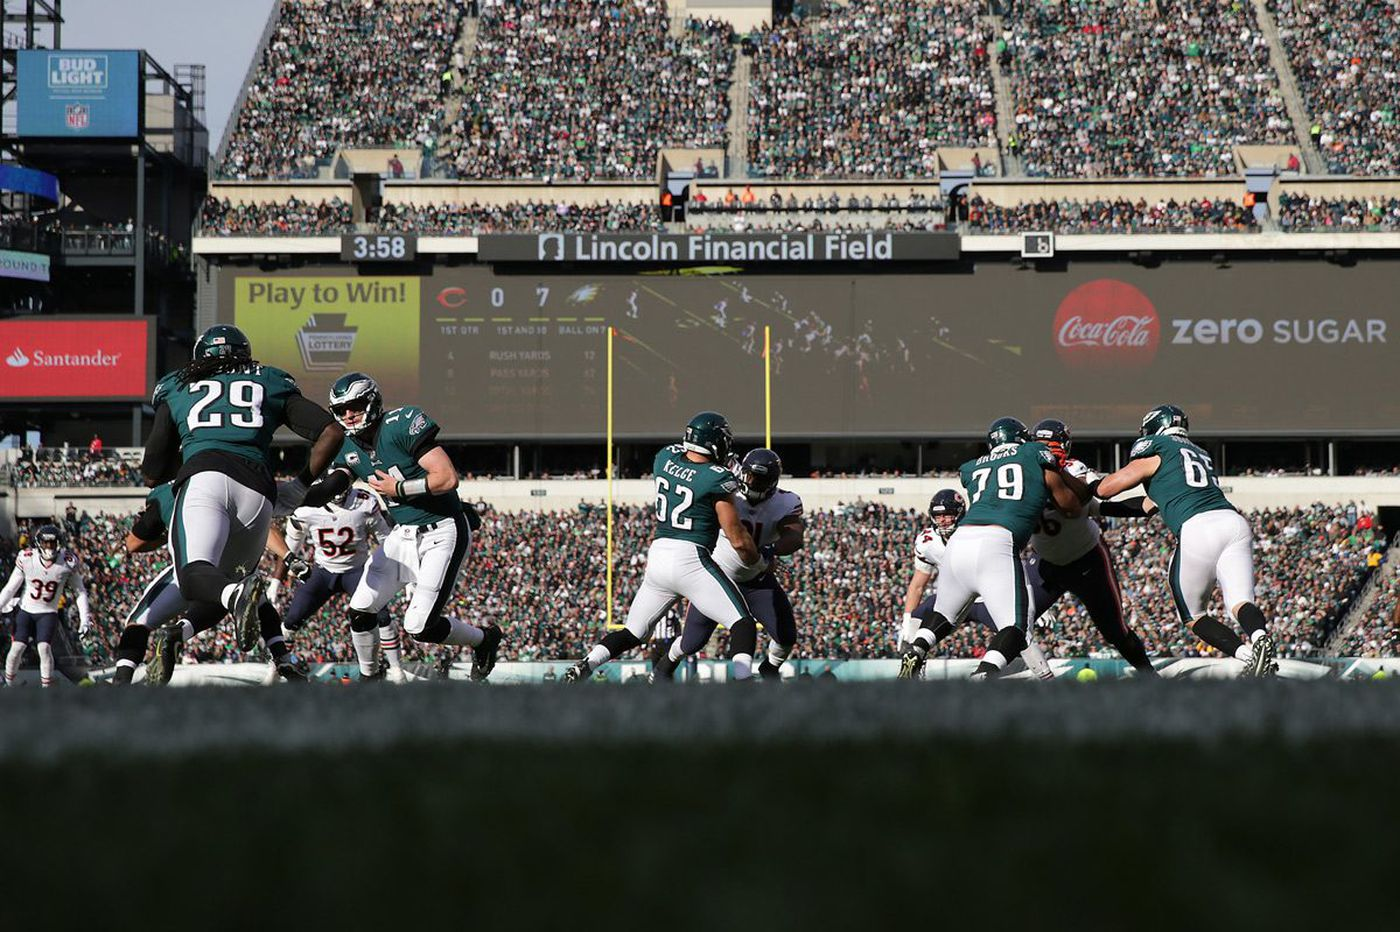 With Bears win behind them, Eagles turn attention to Seahawks   Early Birds